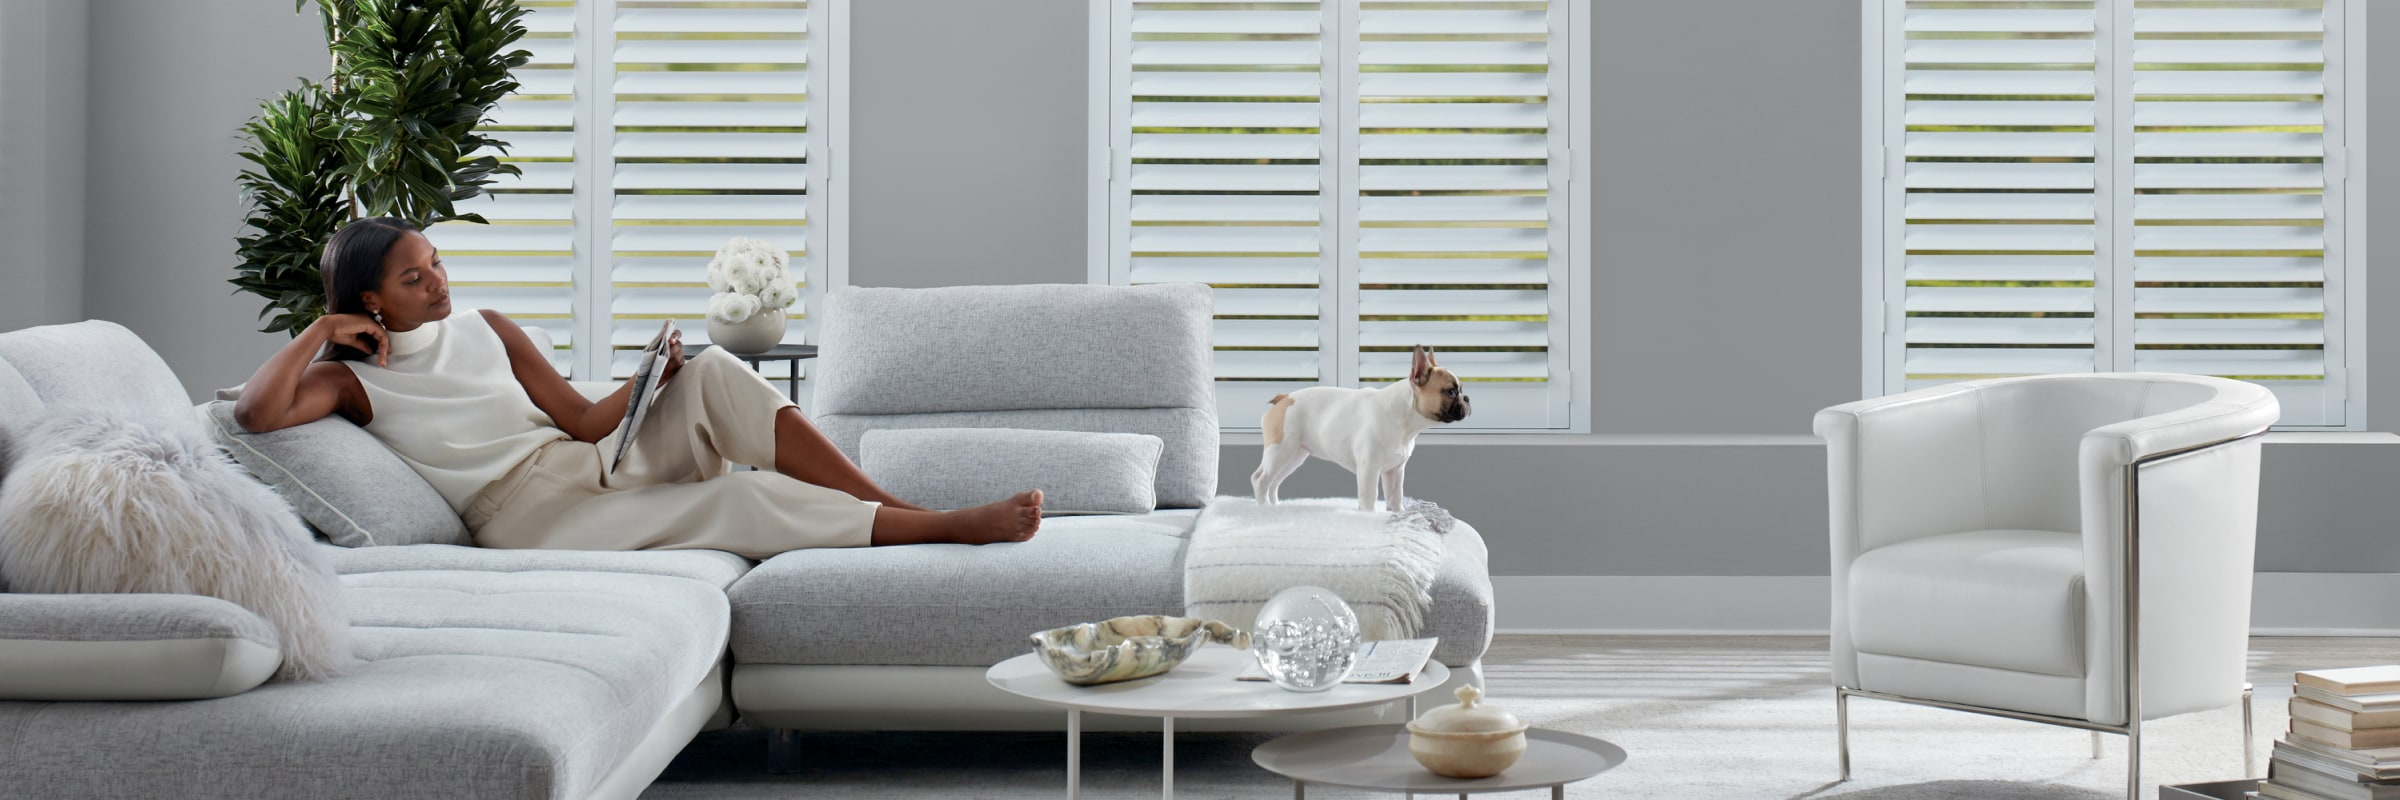 Custom shutters in Hybrid Polar White - NewStyle